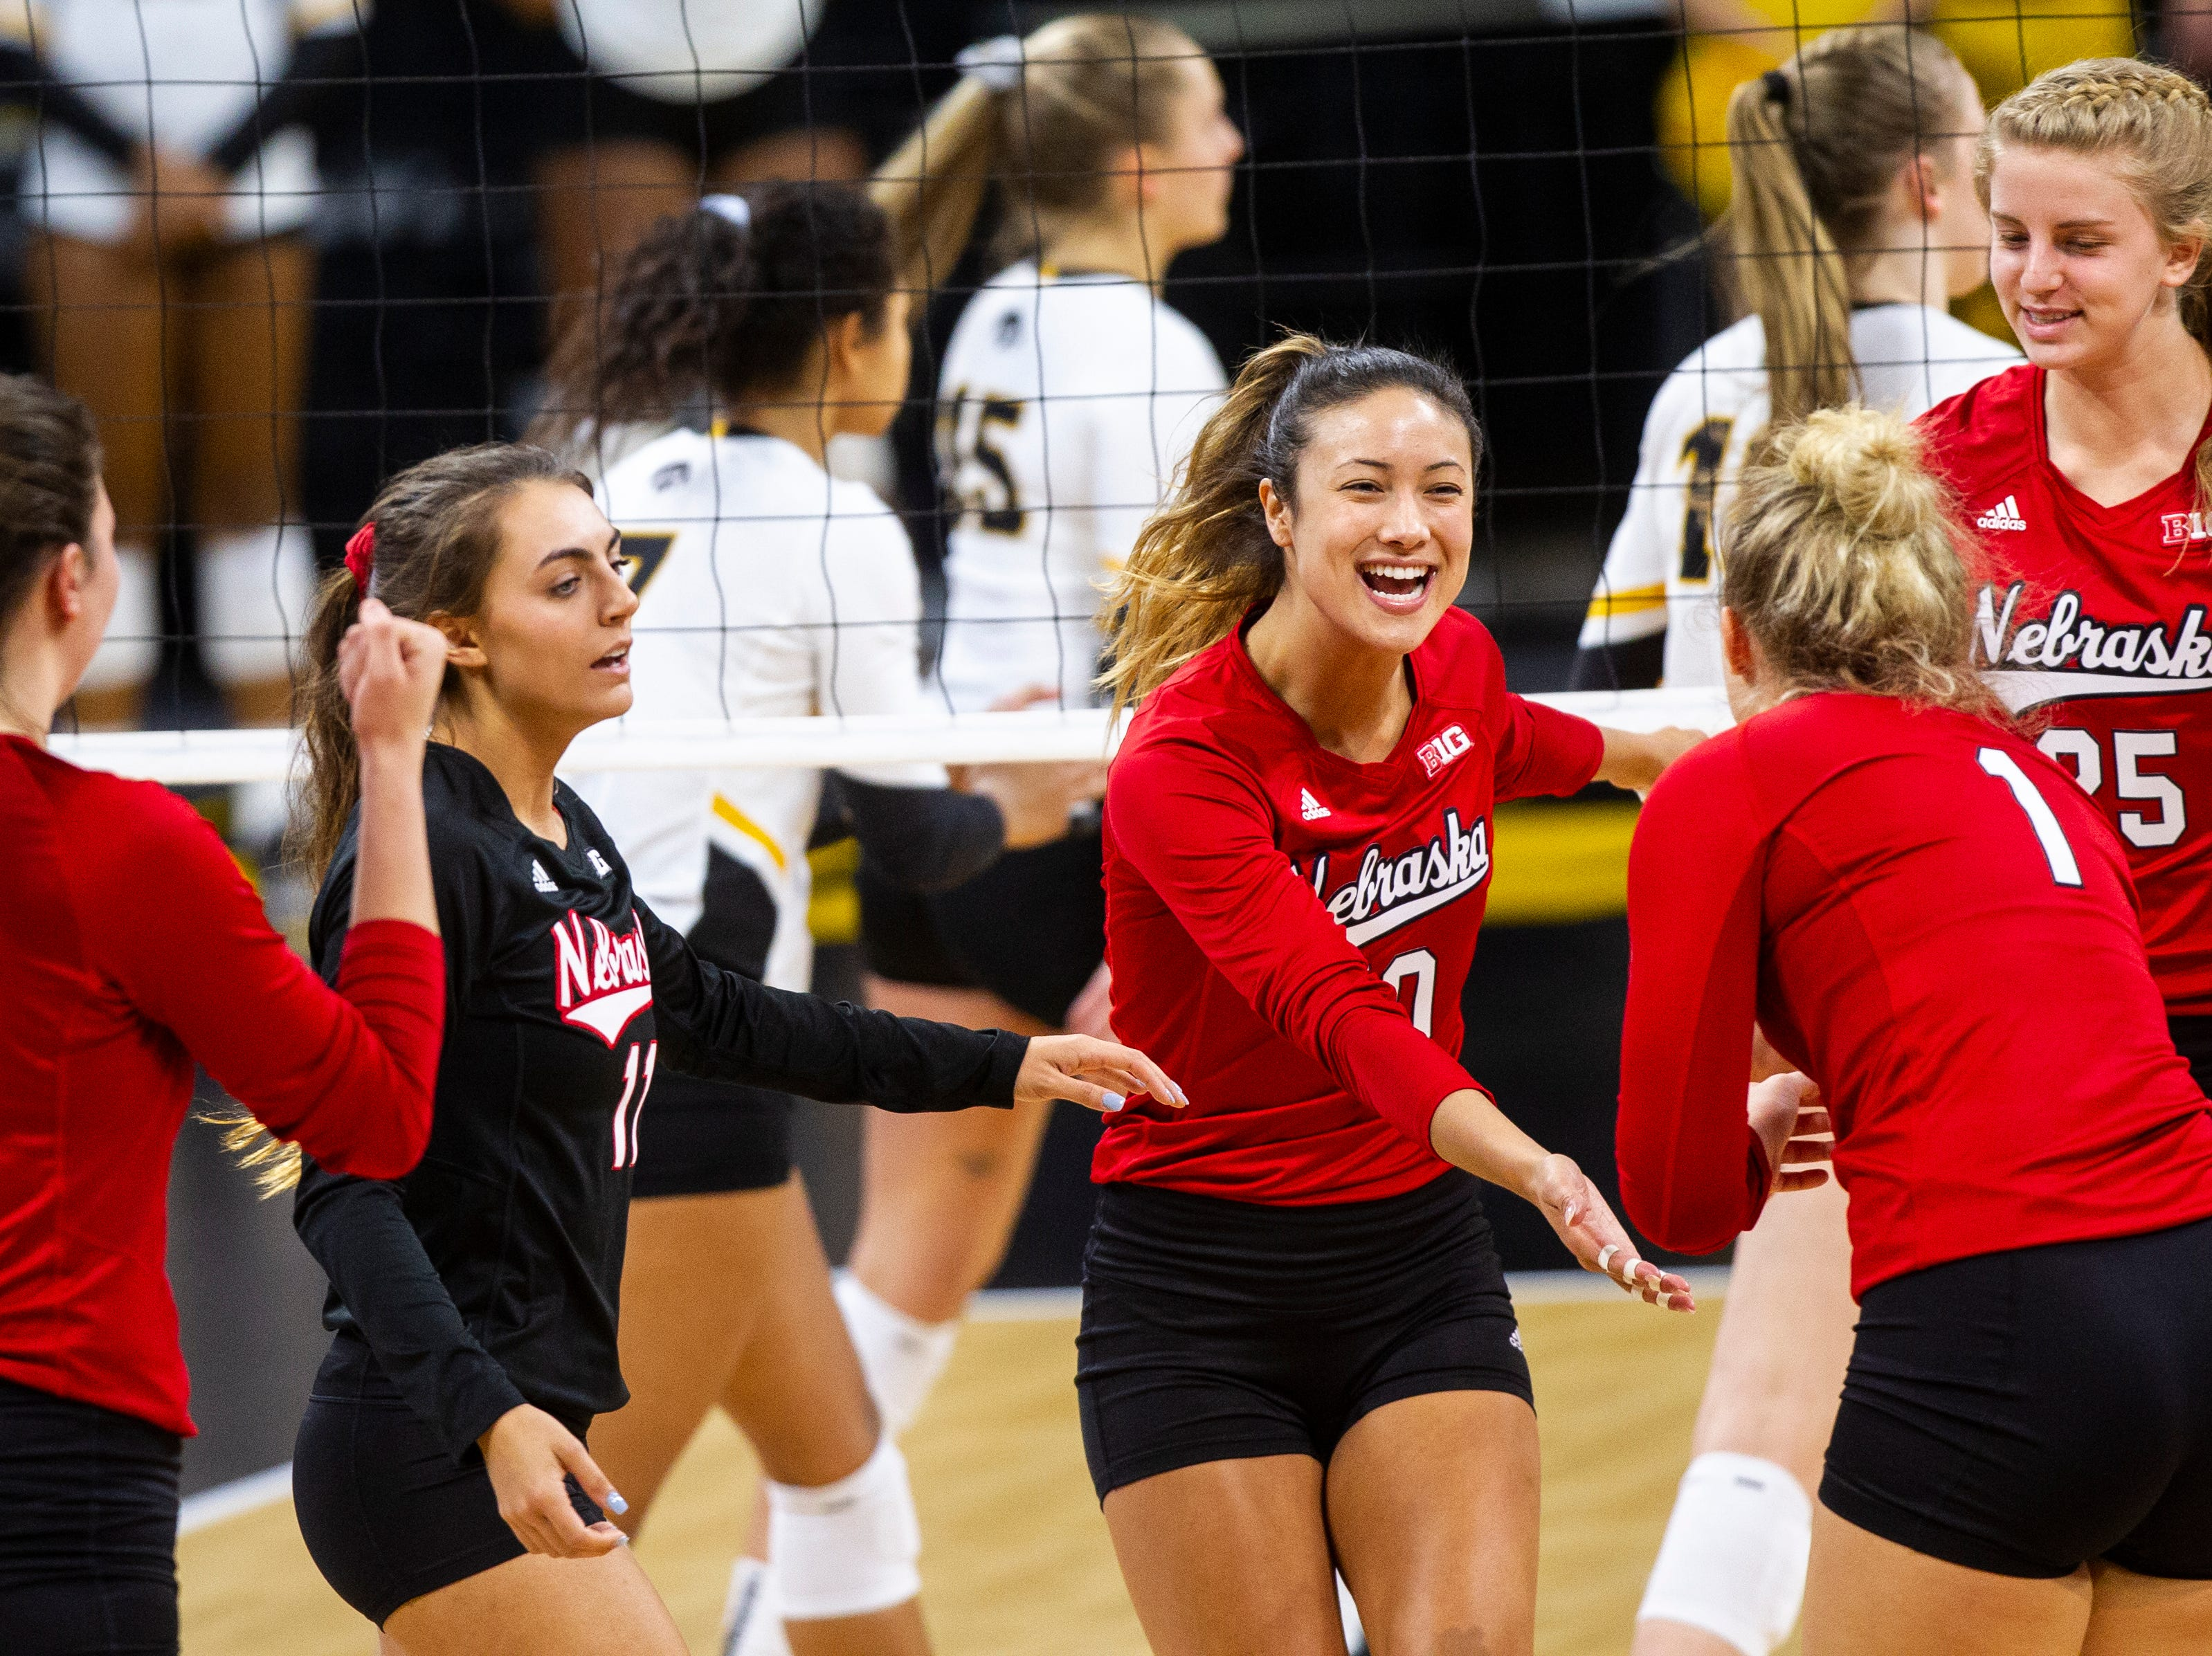 Nebraska's Lexi Sun (10) celebrates a point with teammates during an NCAA volleyball game on Wednesday, Nov. 7, 2018, at Carver-Hawkeye Arena in Iowa City.